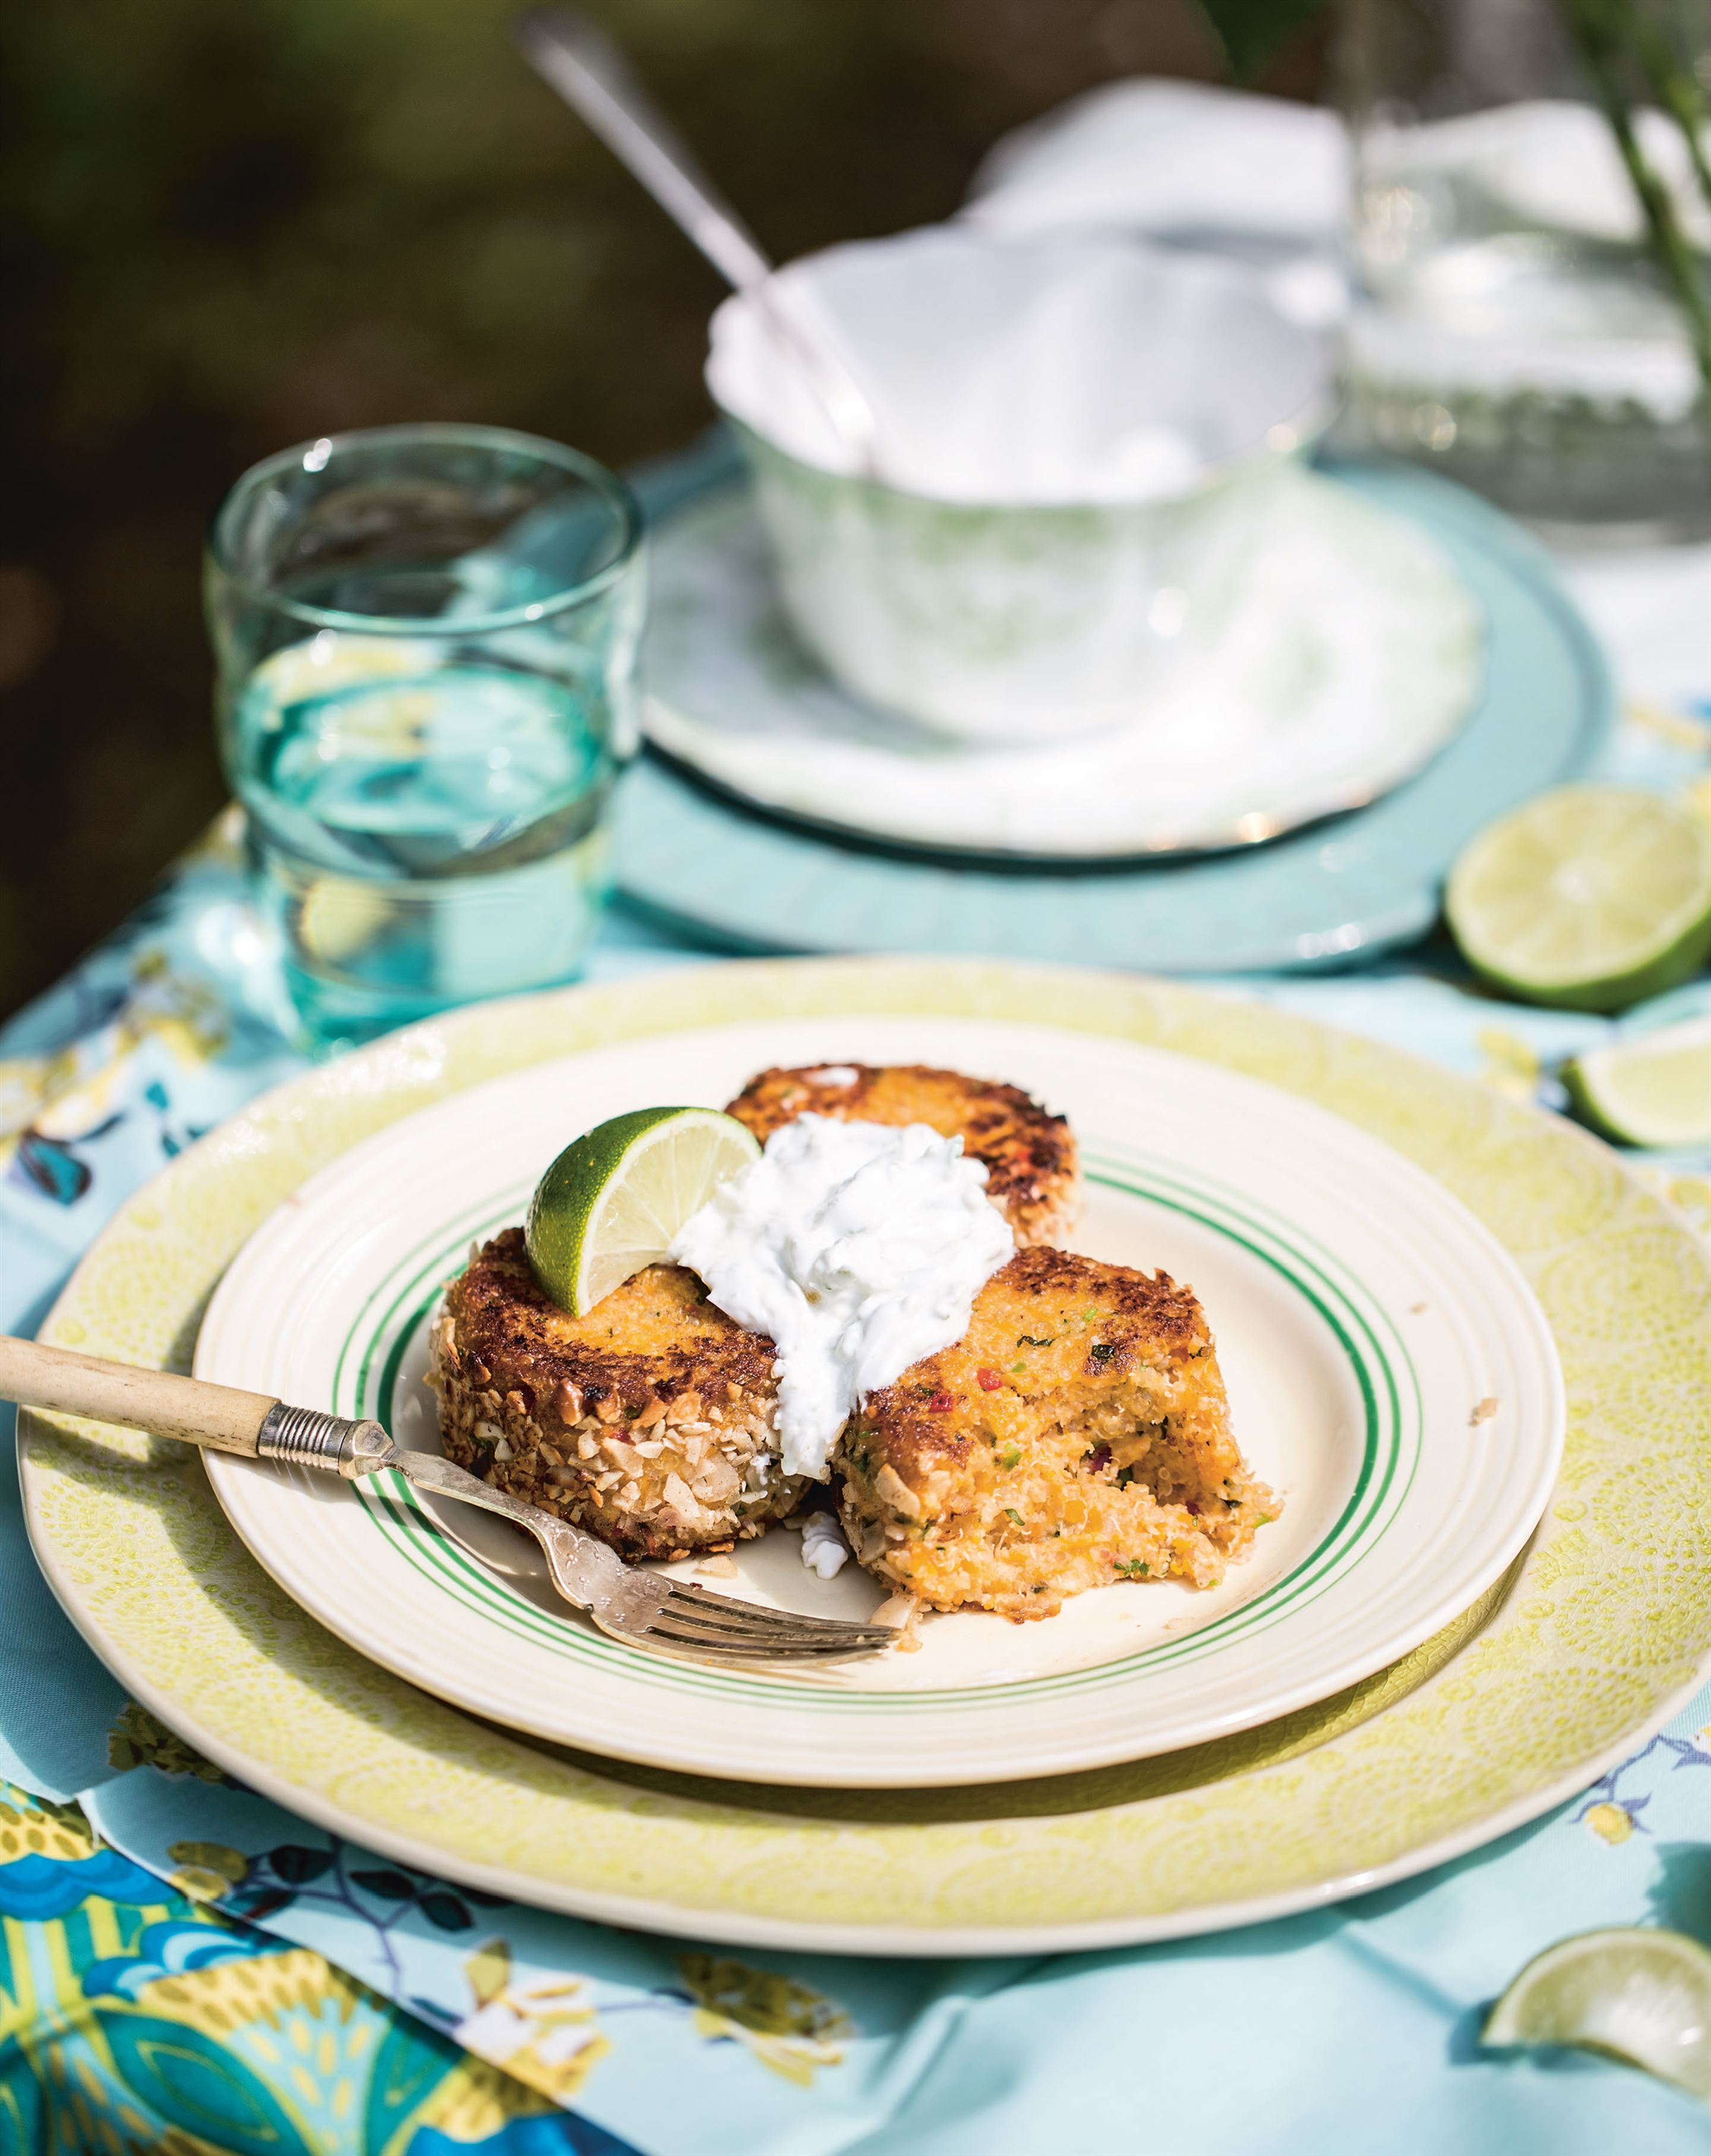 Quinoa and butternut squash cakes